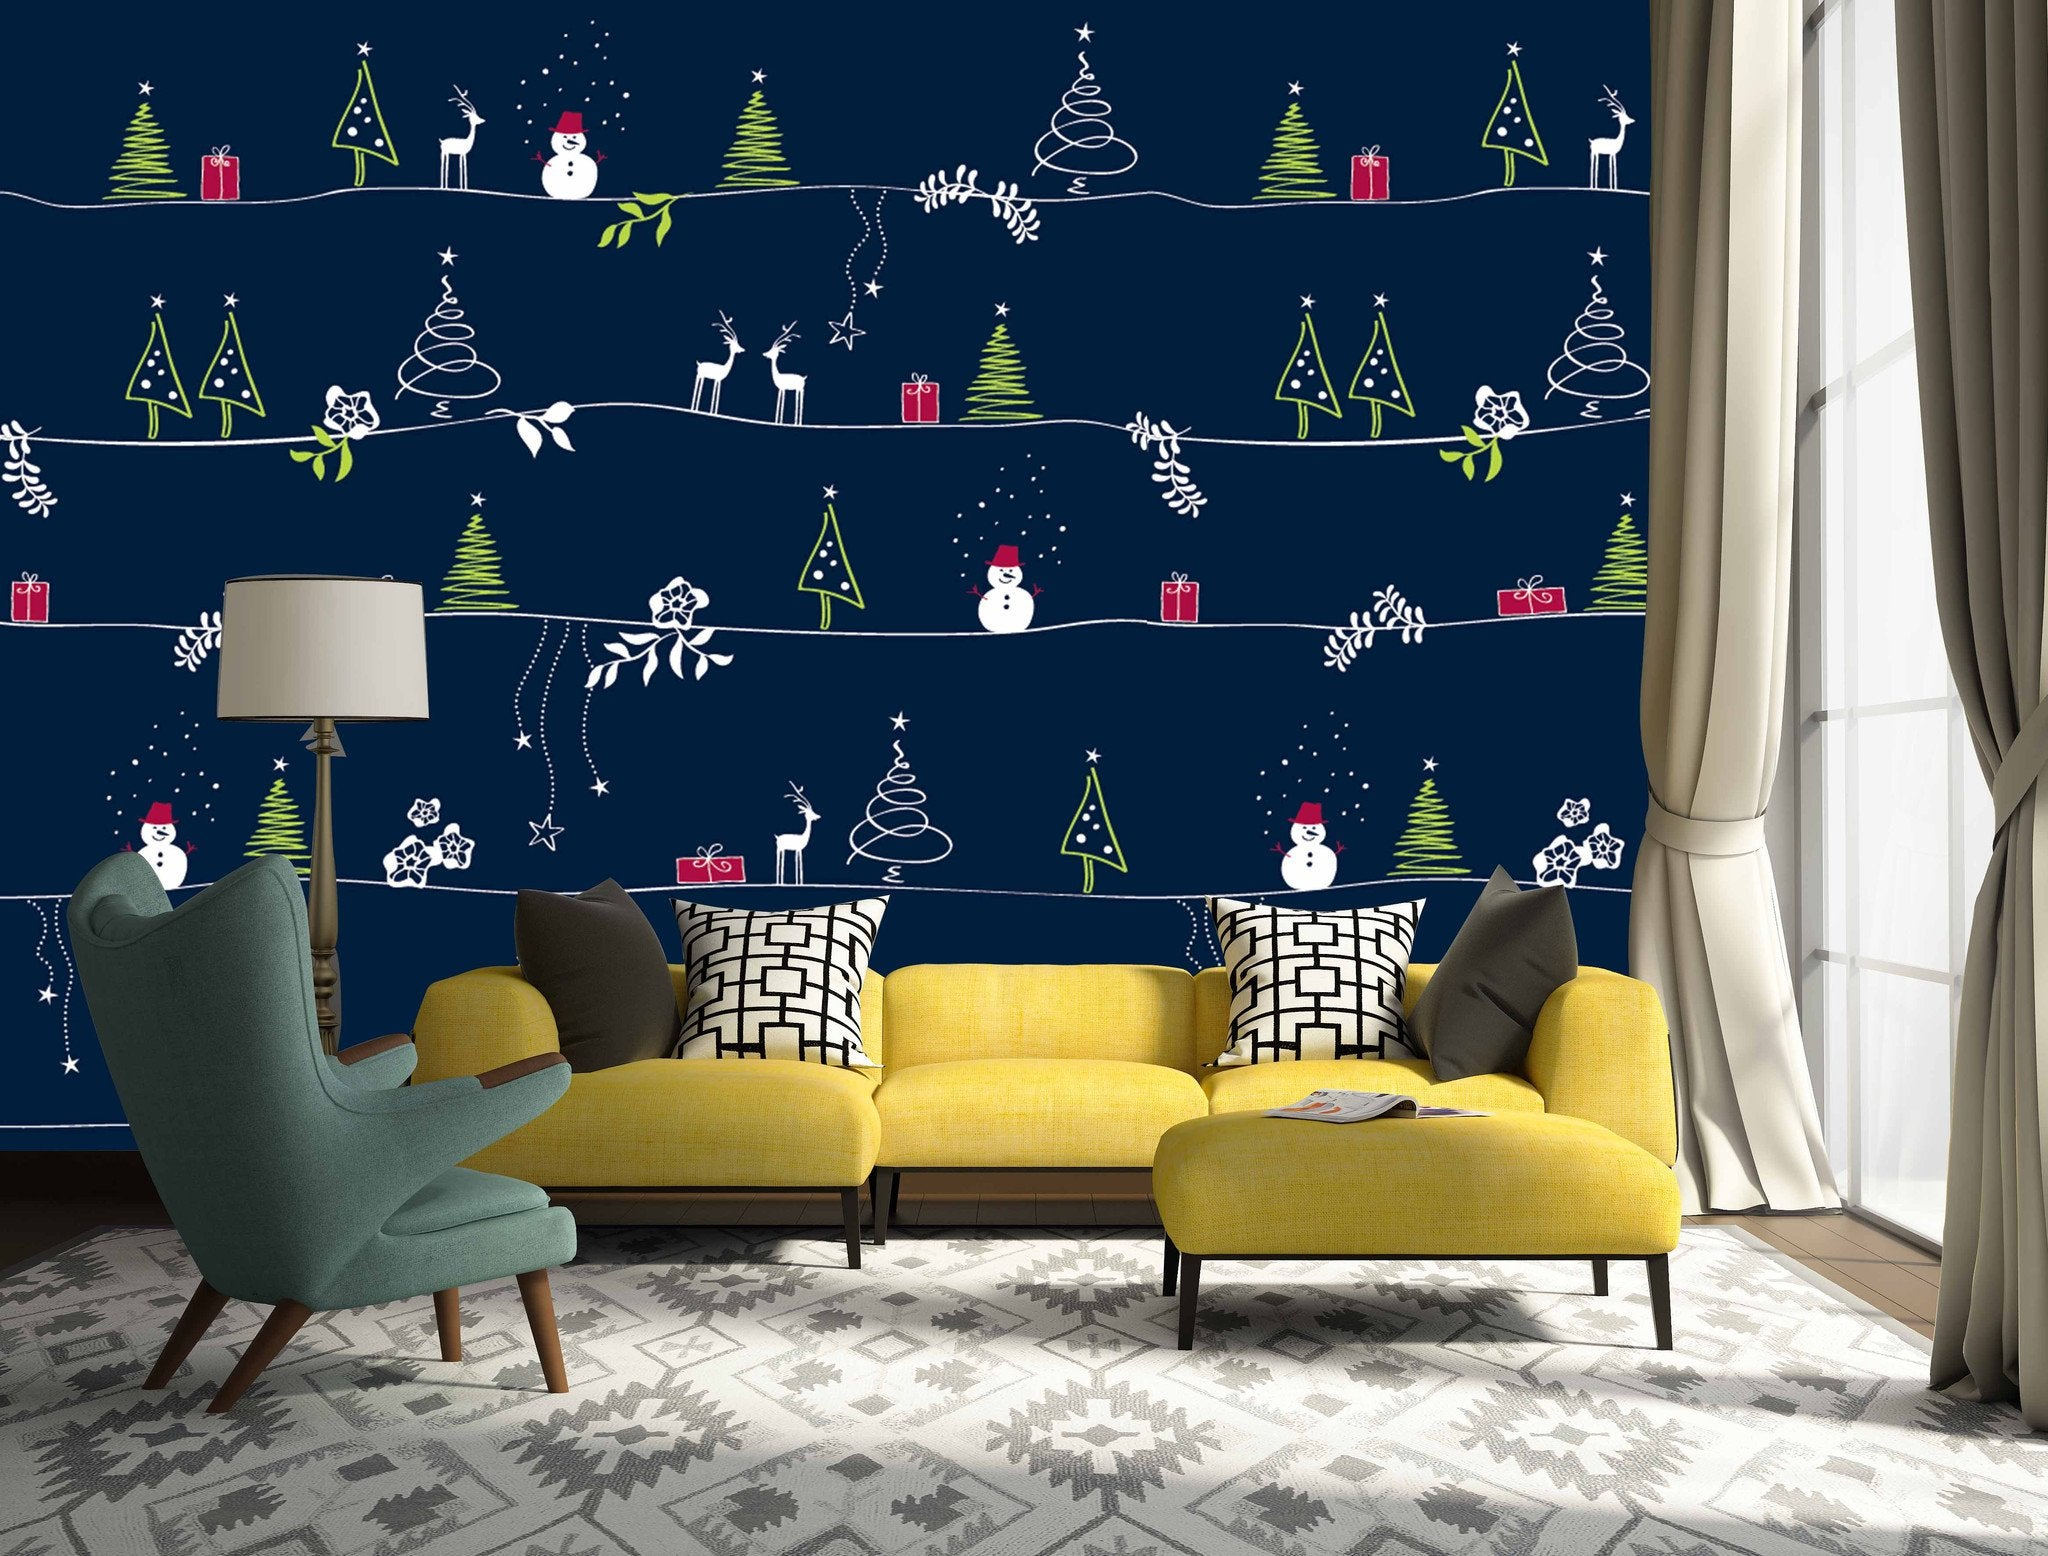 3D Christmas Tree And Reindeer 672